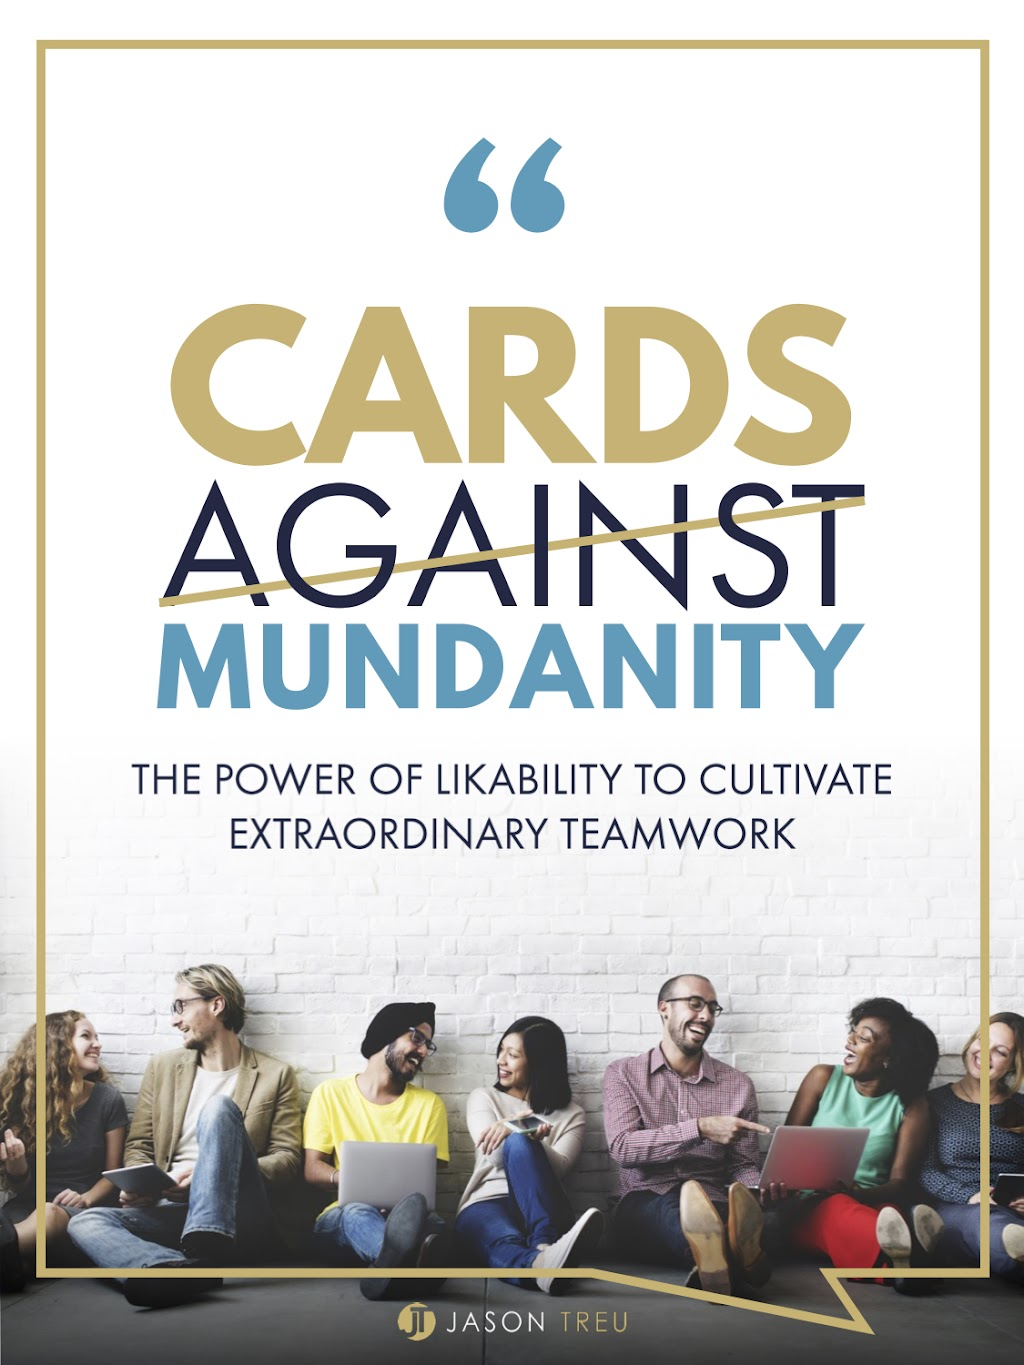 Cards Against Mundanity